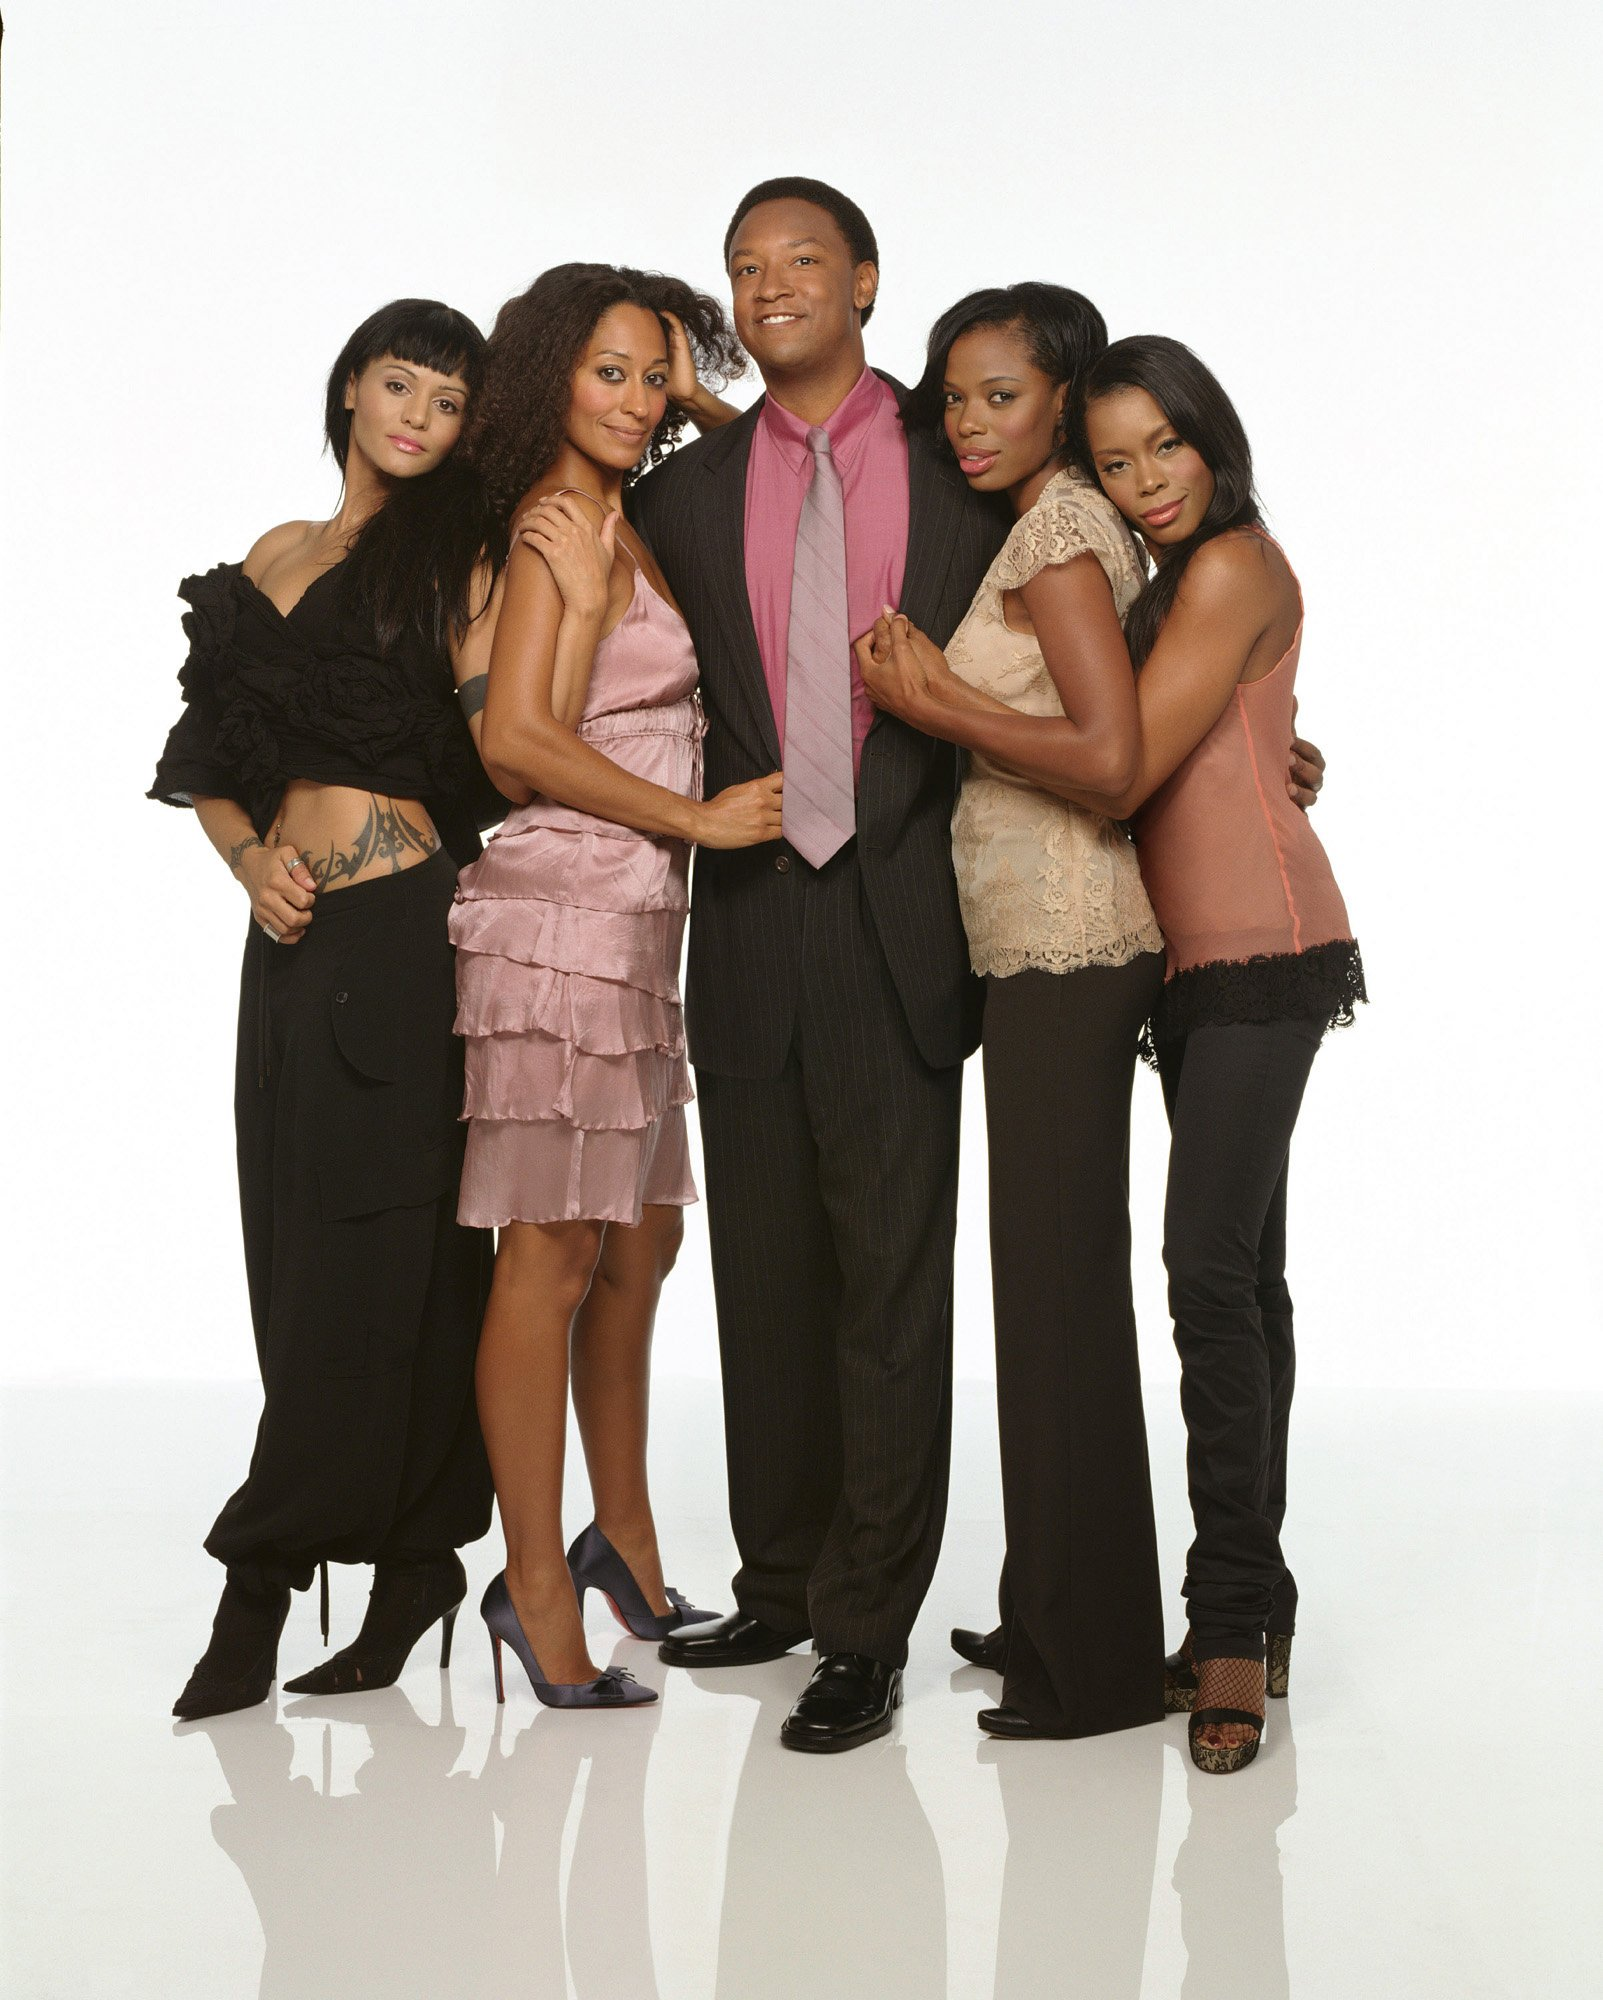 Promotional portrait of the cast of the UPN television series 'Girlfriends,' Los Angeles, California, January 5, 2004. | Photo: Getty Images